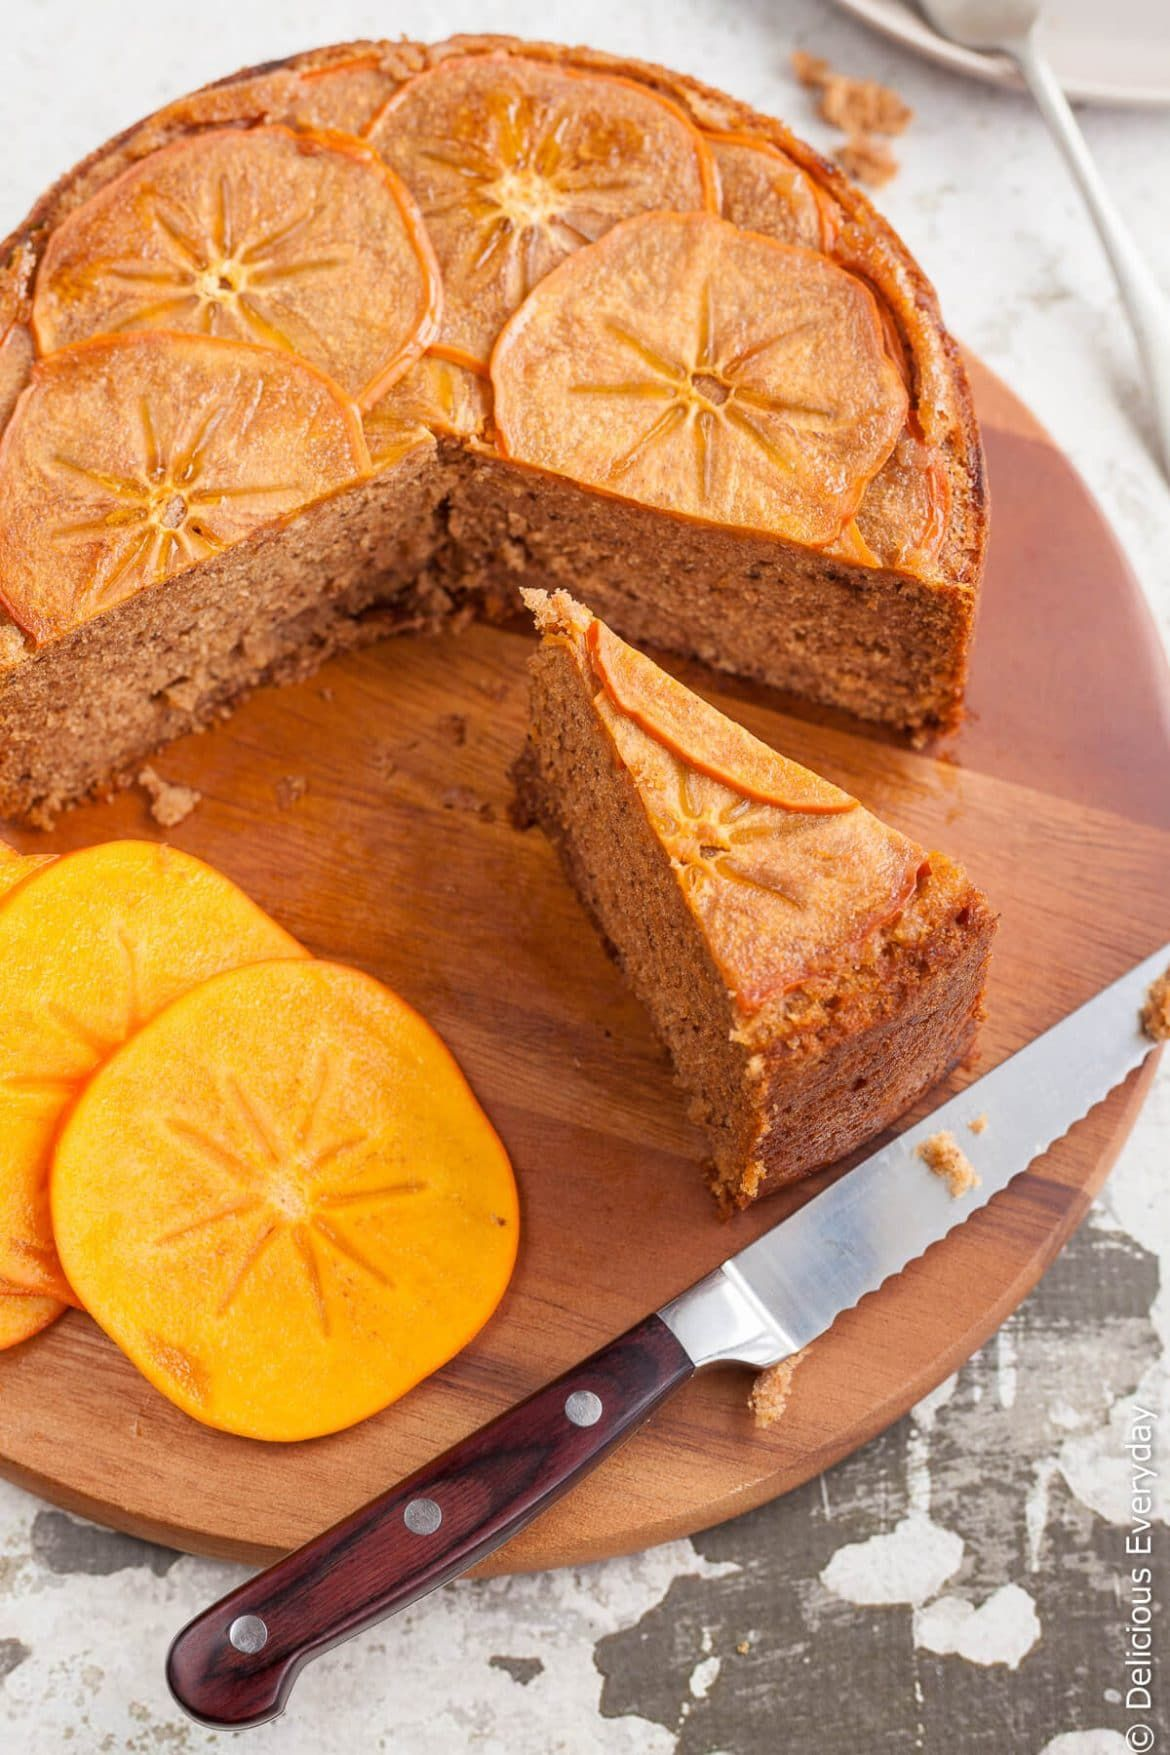 Upside Down Persimmon Cake With Maple Syrup And Walnuts -